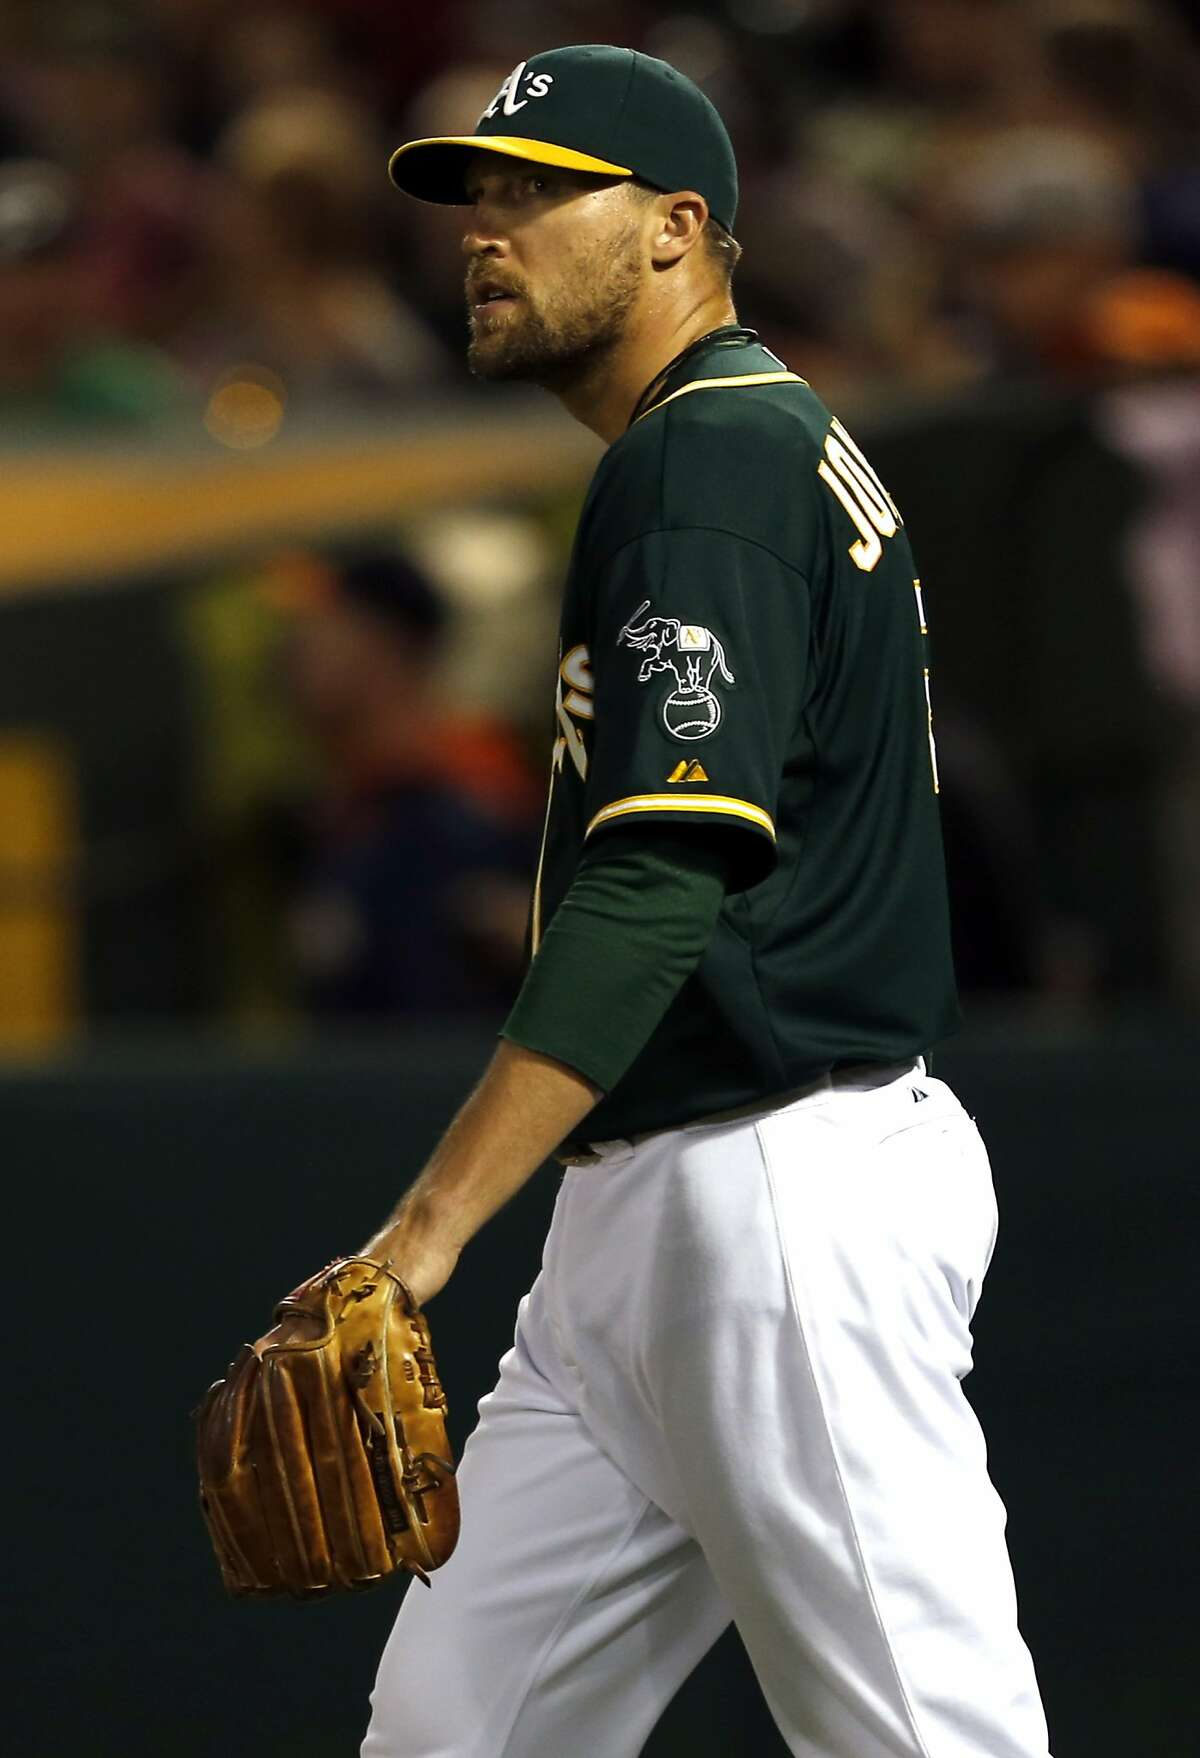 Oakland Athletics' Jim Johnson while giving up 4 runs without recording an out in 8th inning during A's 9-7 win over Houston Astros during MLB game at O.co Coliseum in Oakland, Calif. on Wednesday, July 23, 2014.